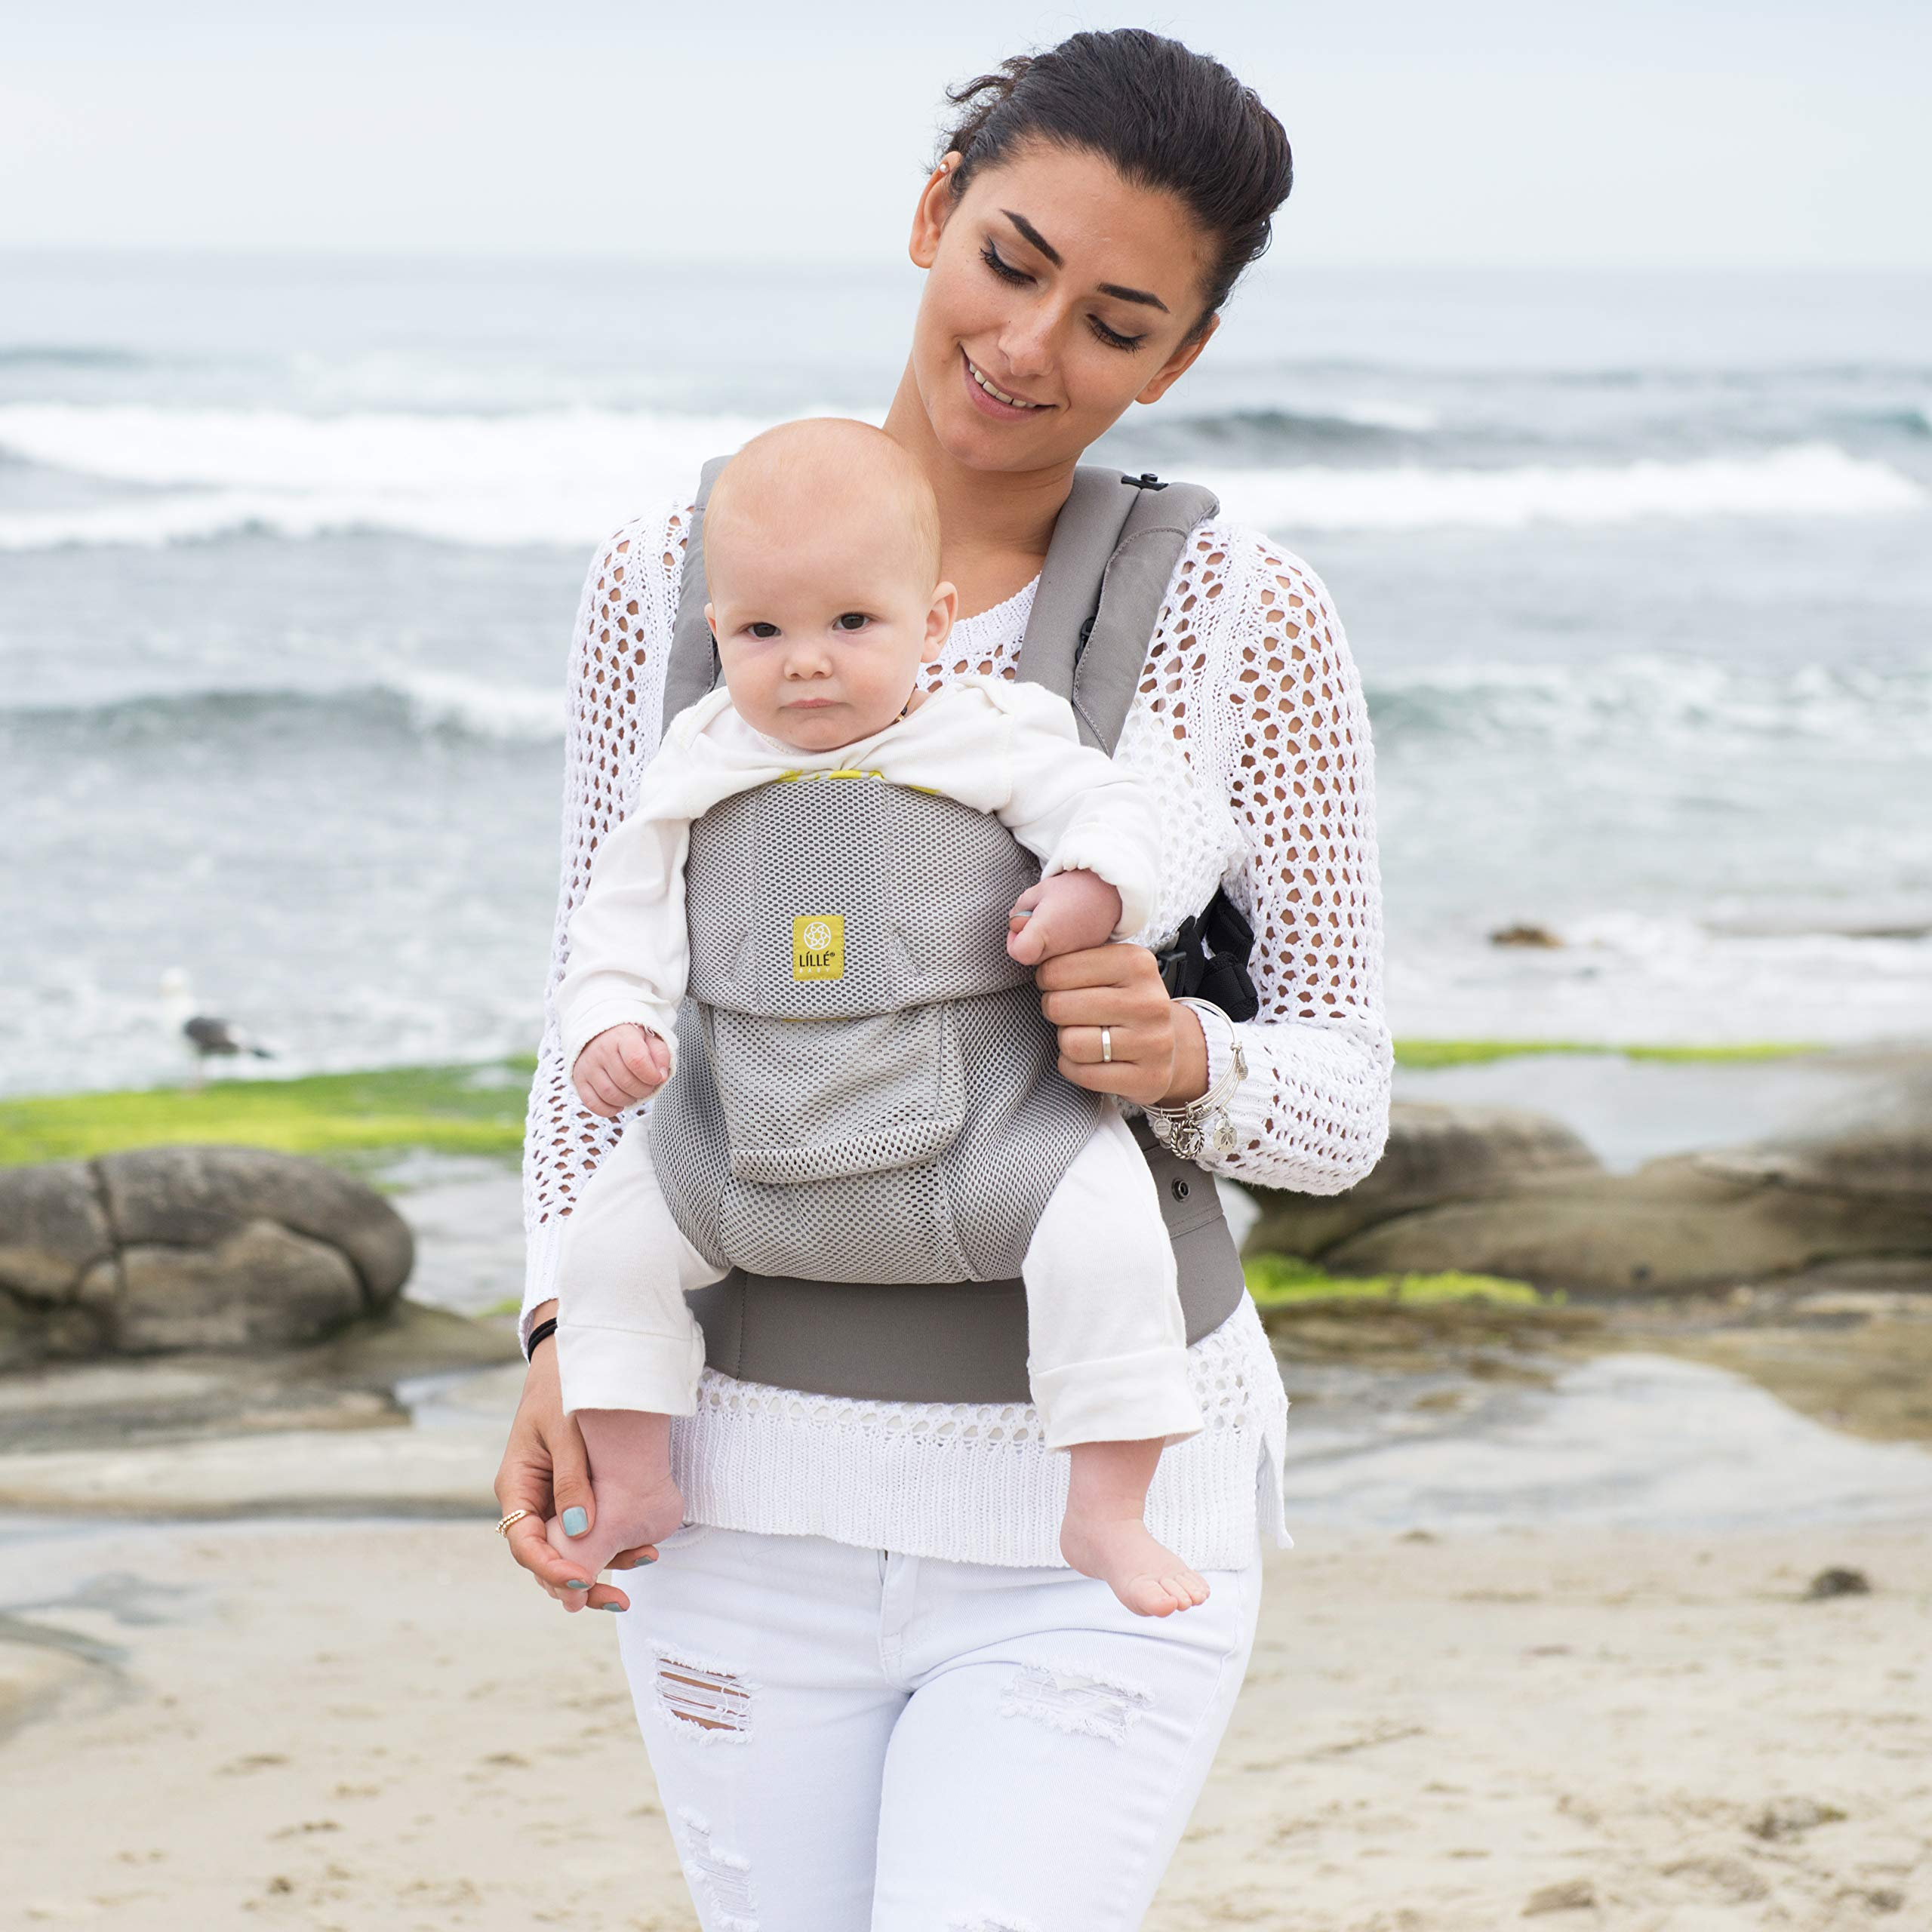 Lillebaby The Complete Airflow 360° Ergonomic Six-Position Baby & Child Carrier, Silver by LILLEbaby (Image #7)